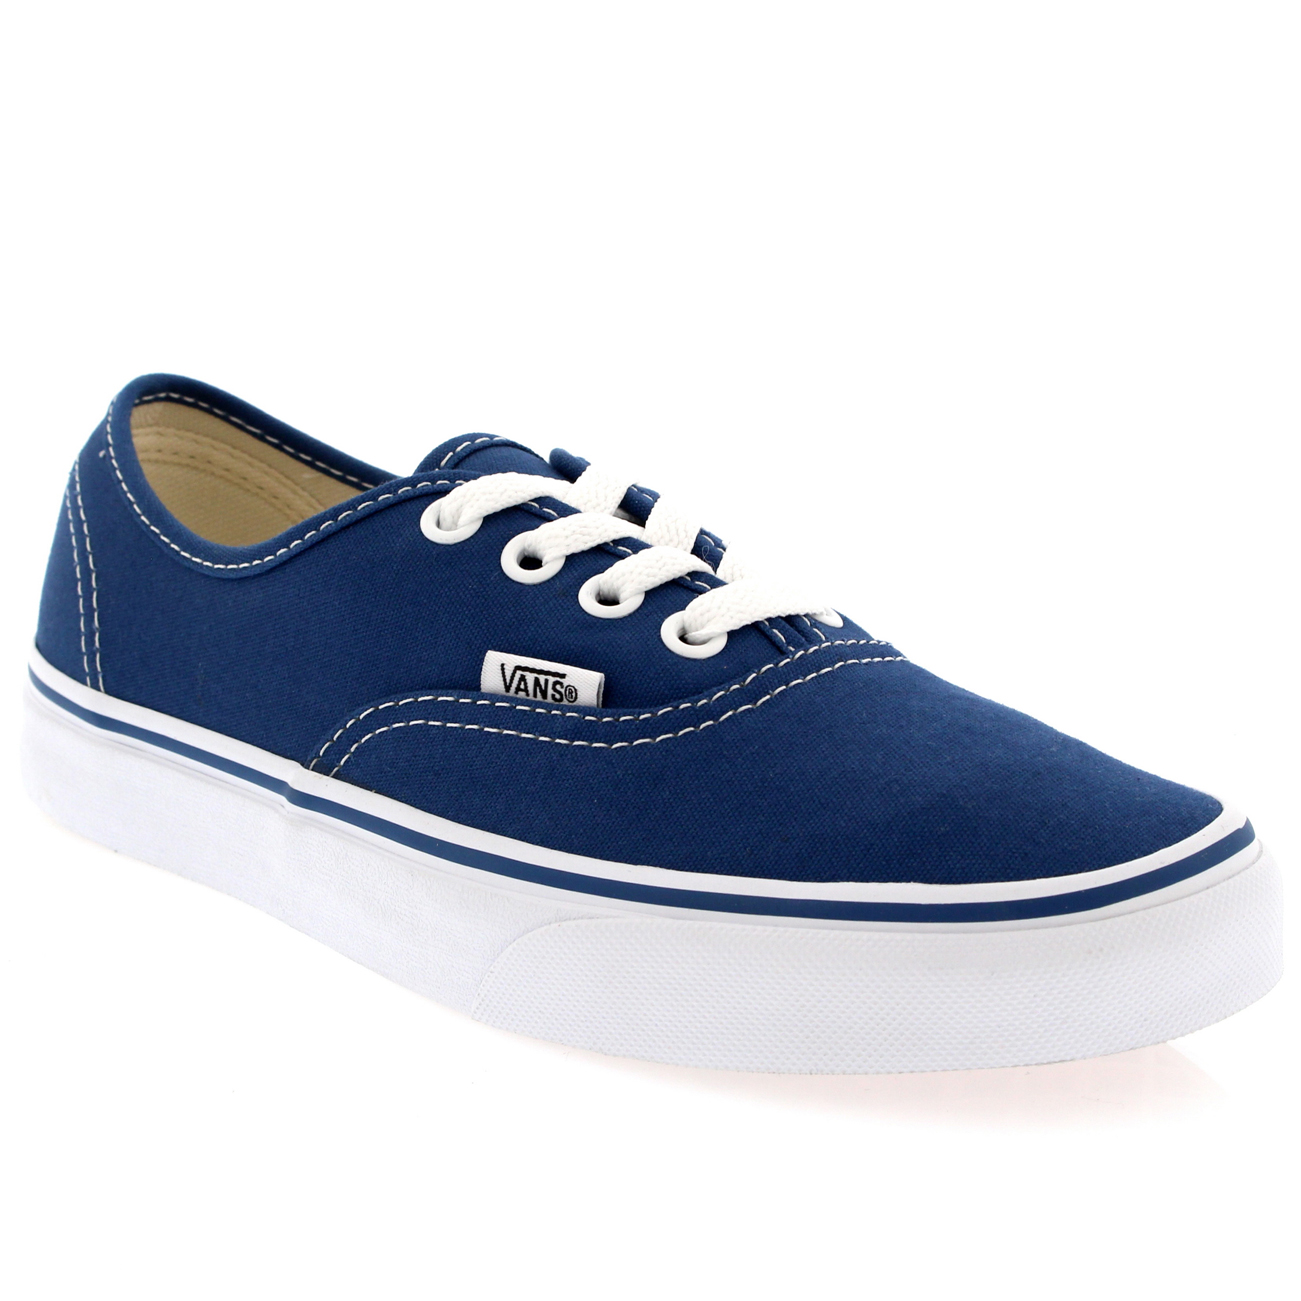 Womens-Vans-Authentic-Canvas-Trainers-Casual-Lace-Up-